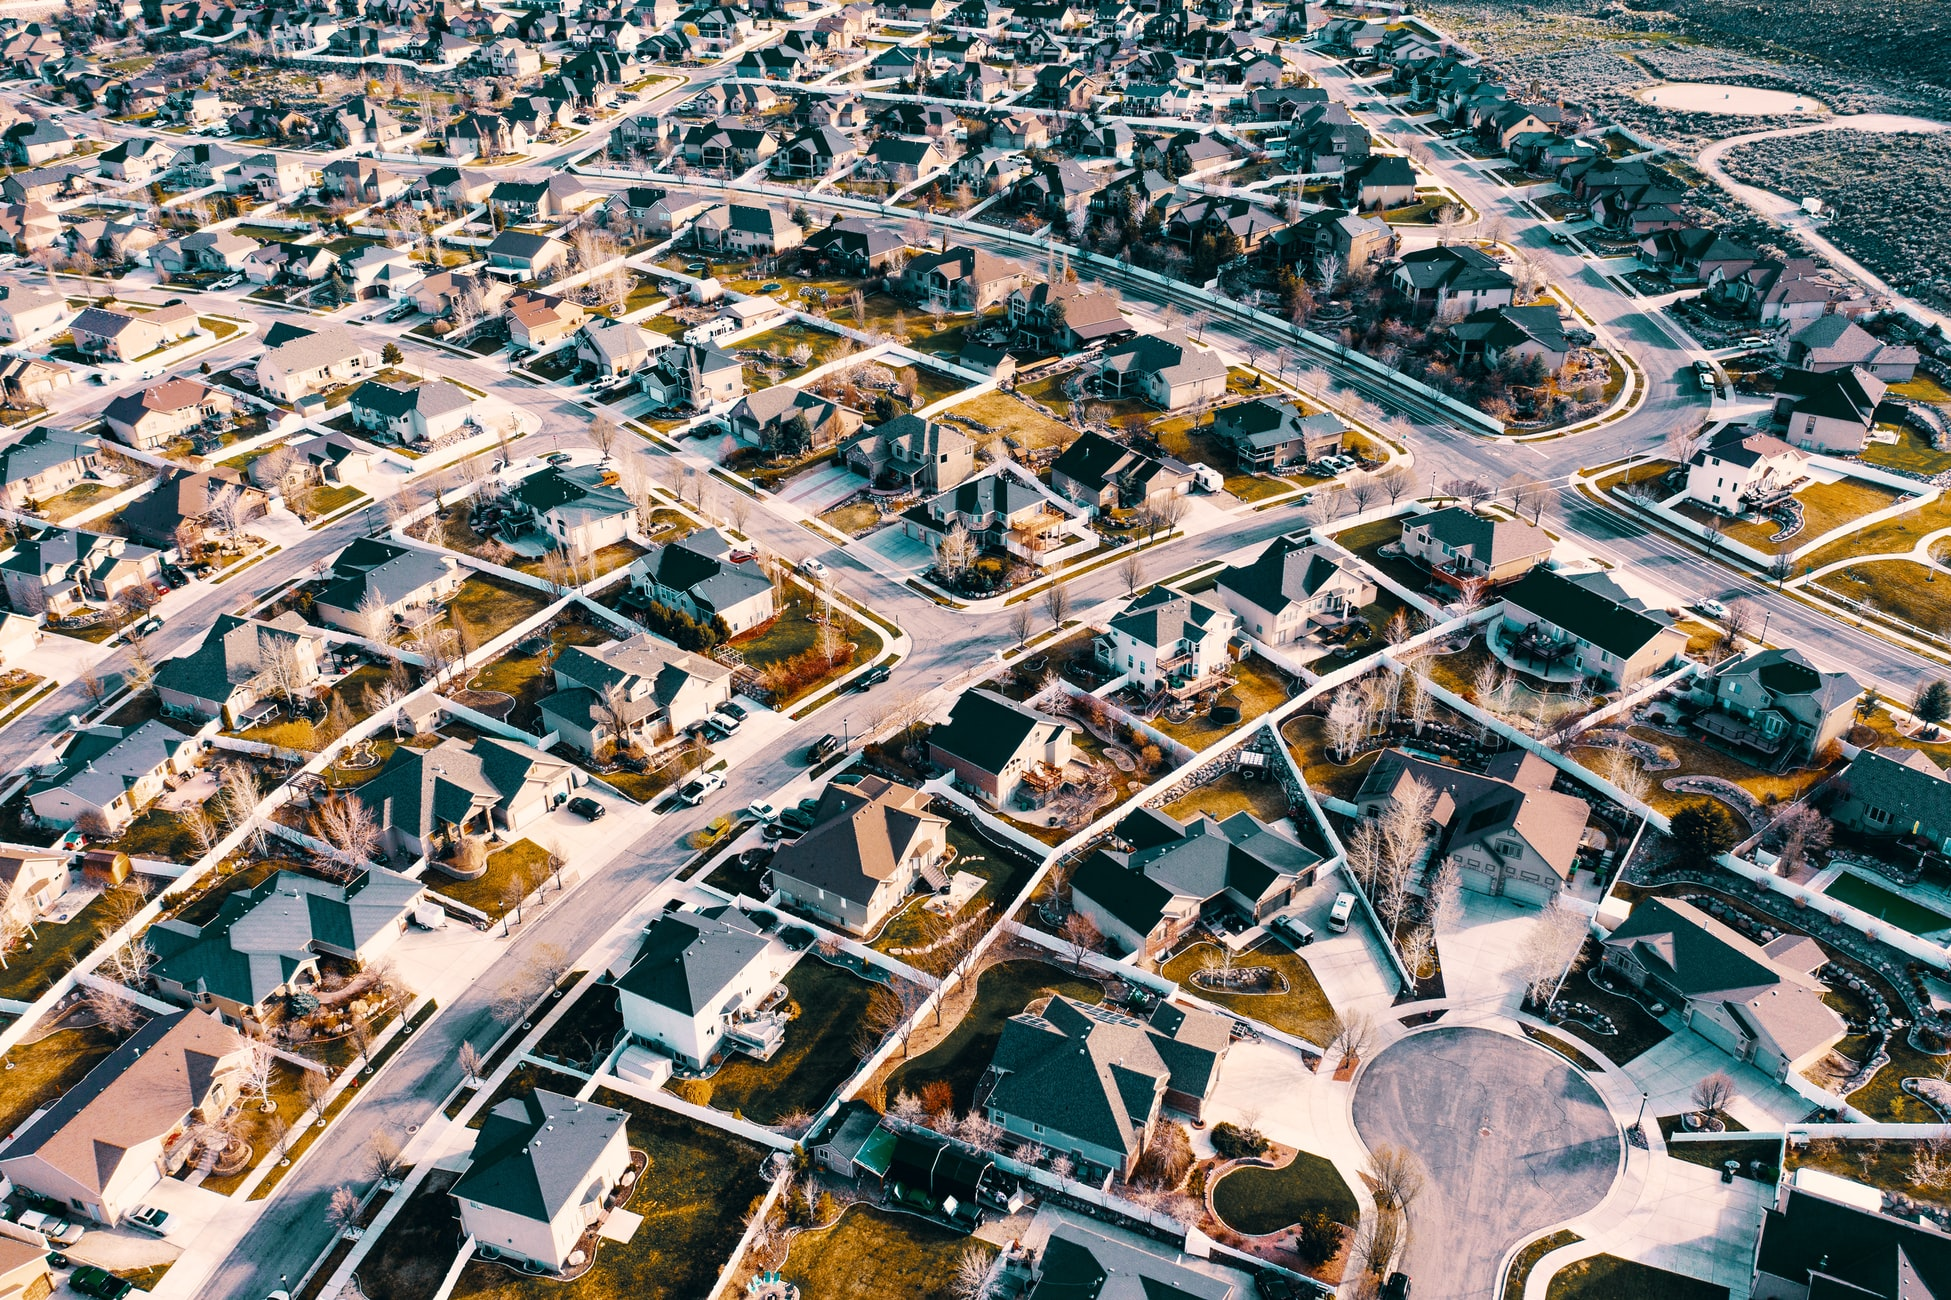 The U.S. Real Estate Market Continues to Defy Expectations